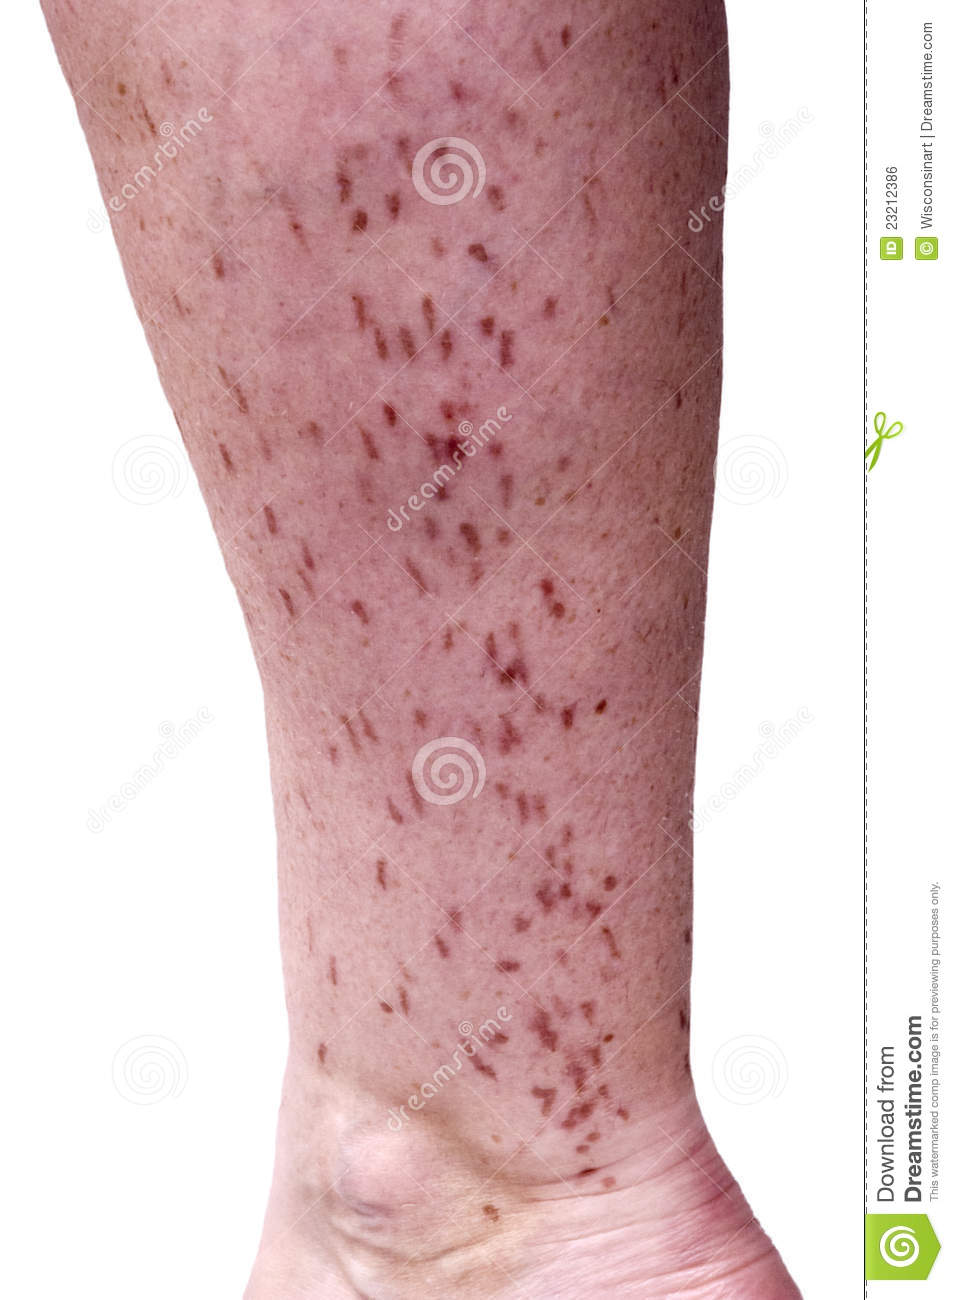 Laser Hair Removal Burn Skin Scarred Blister Stock Photo Image Of Sores Blisters 23212386